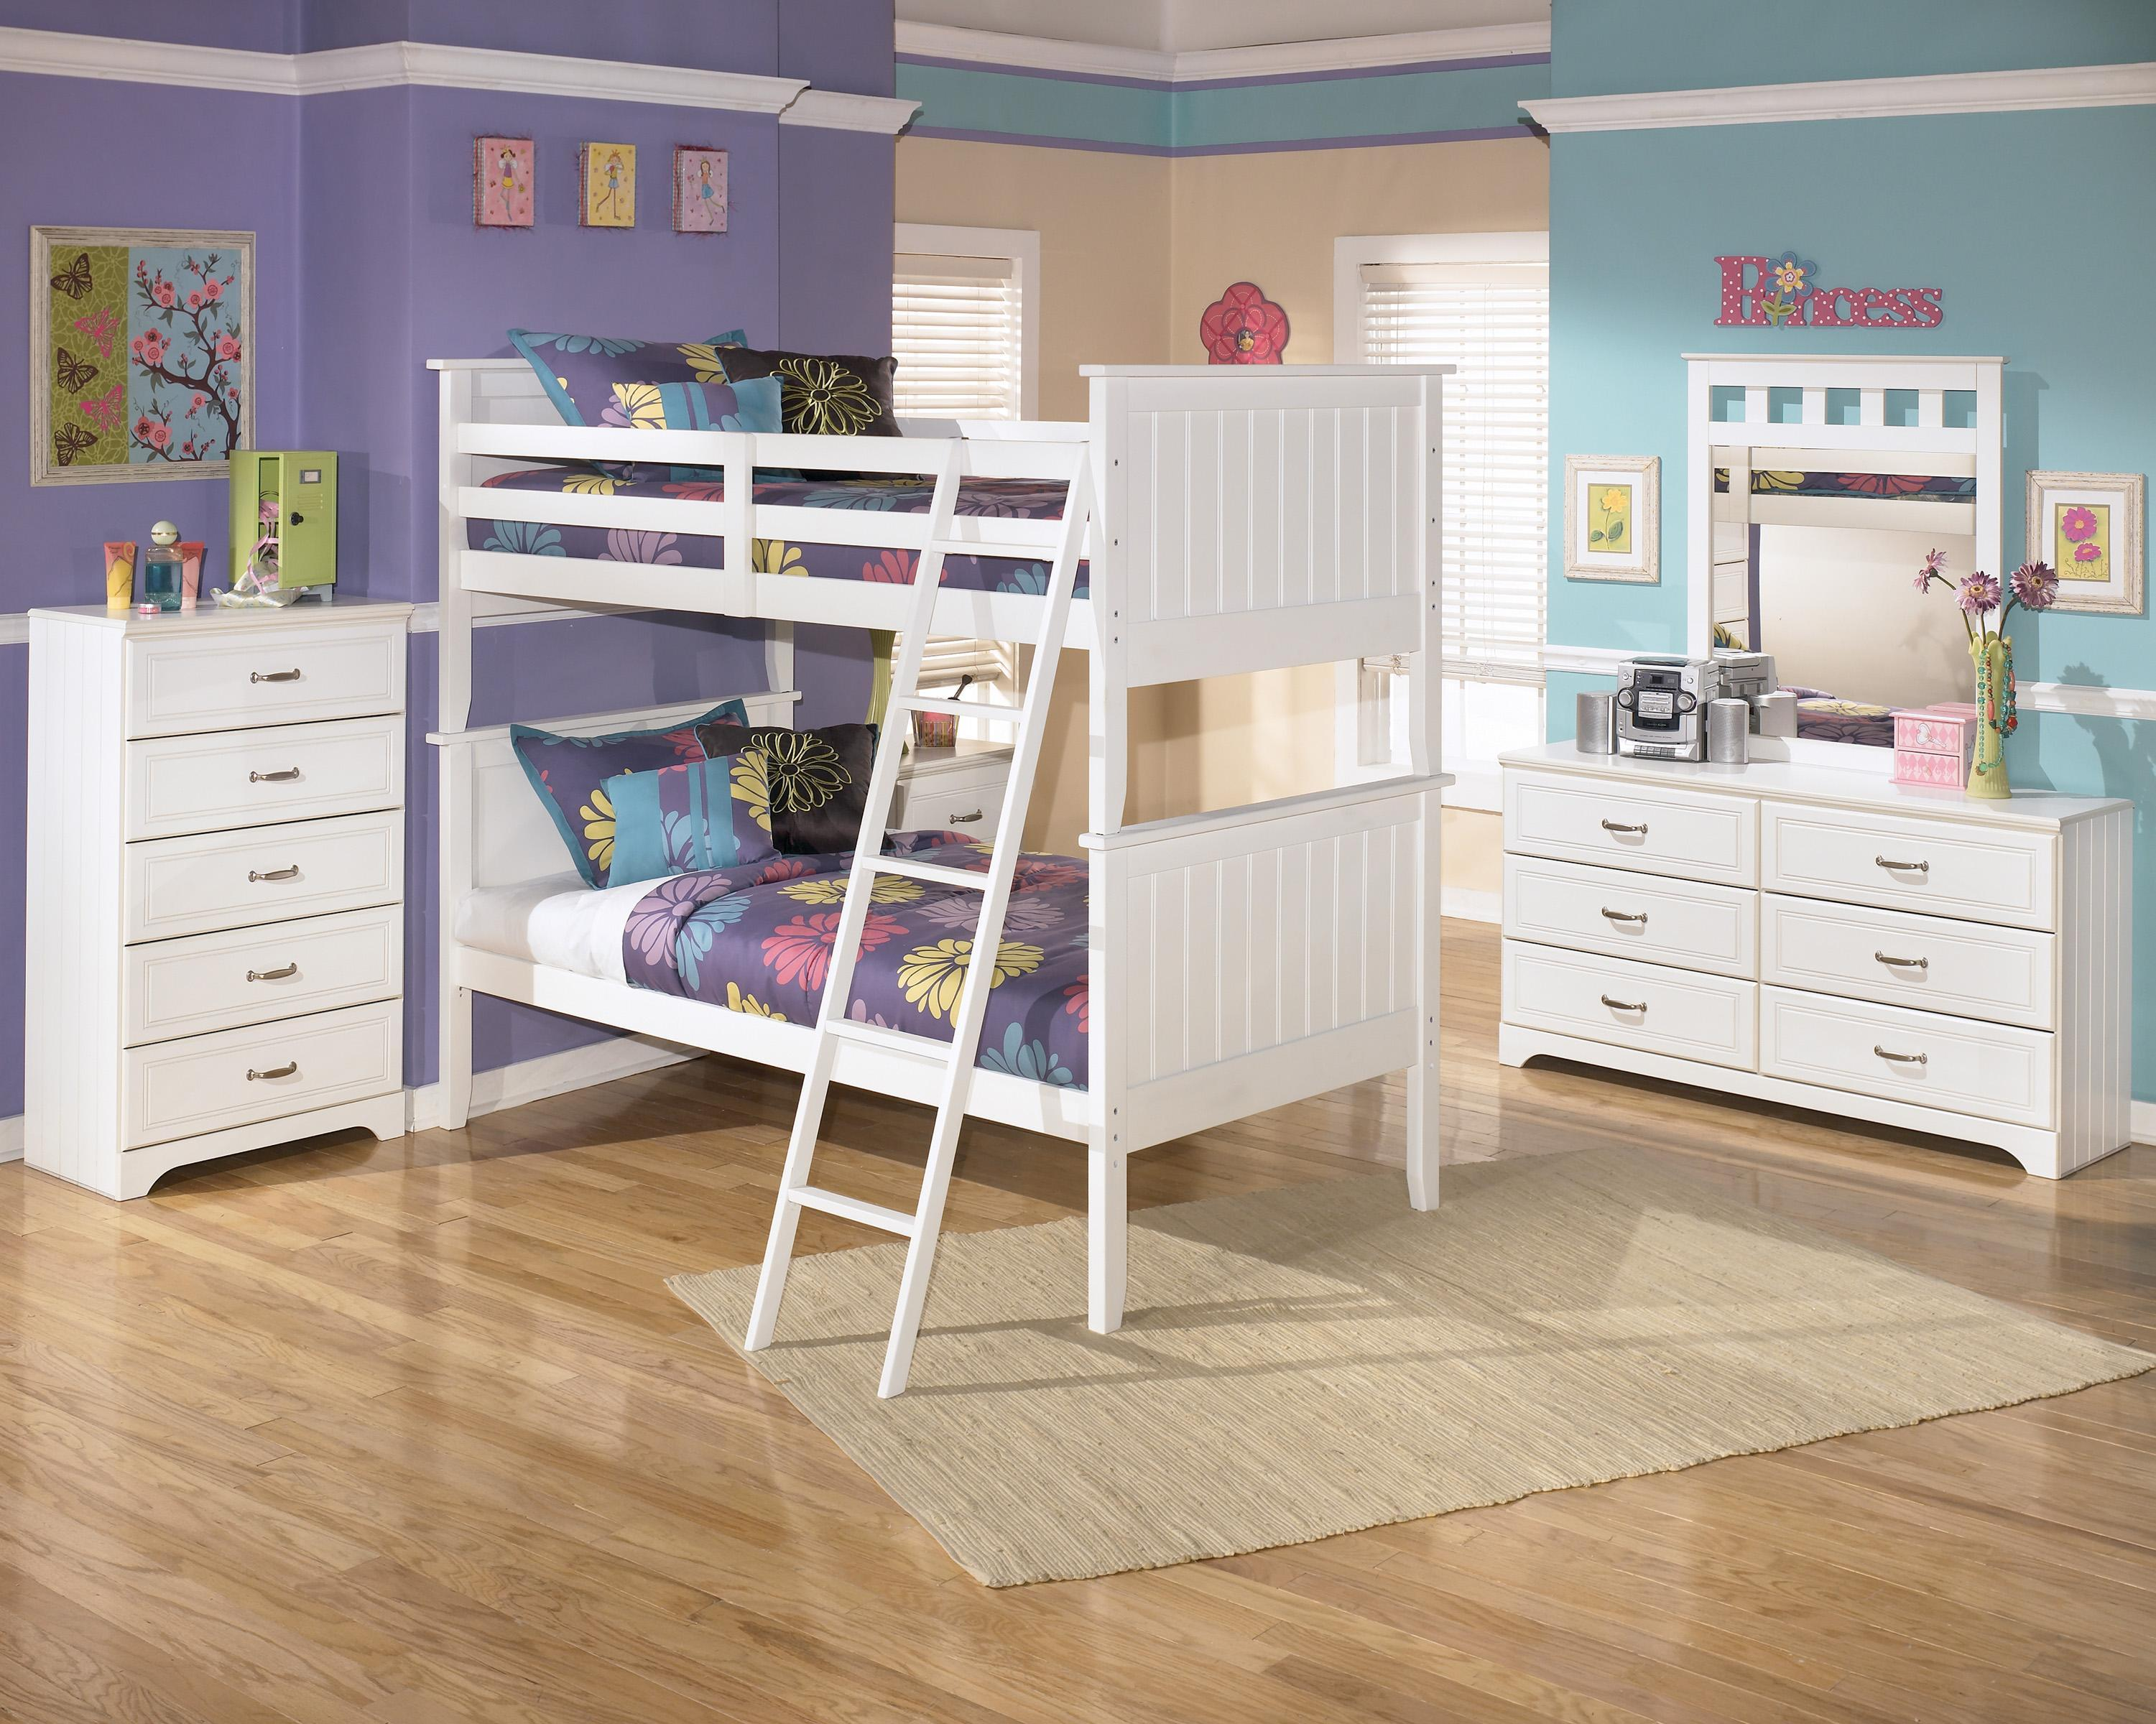 Signature Design by Ashley Lulu Twin Bunk Bedroom Group - Item Number: B102 T Bedroom Group 1